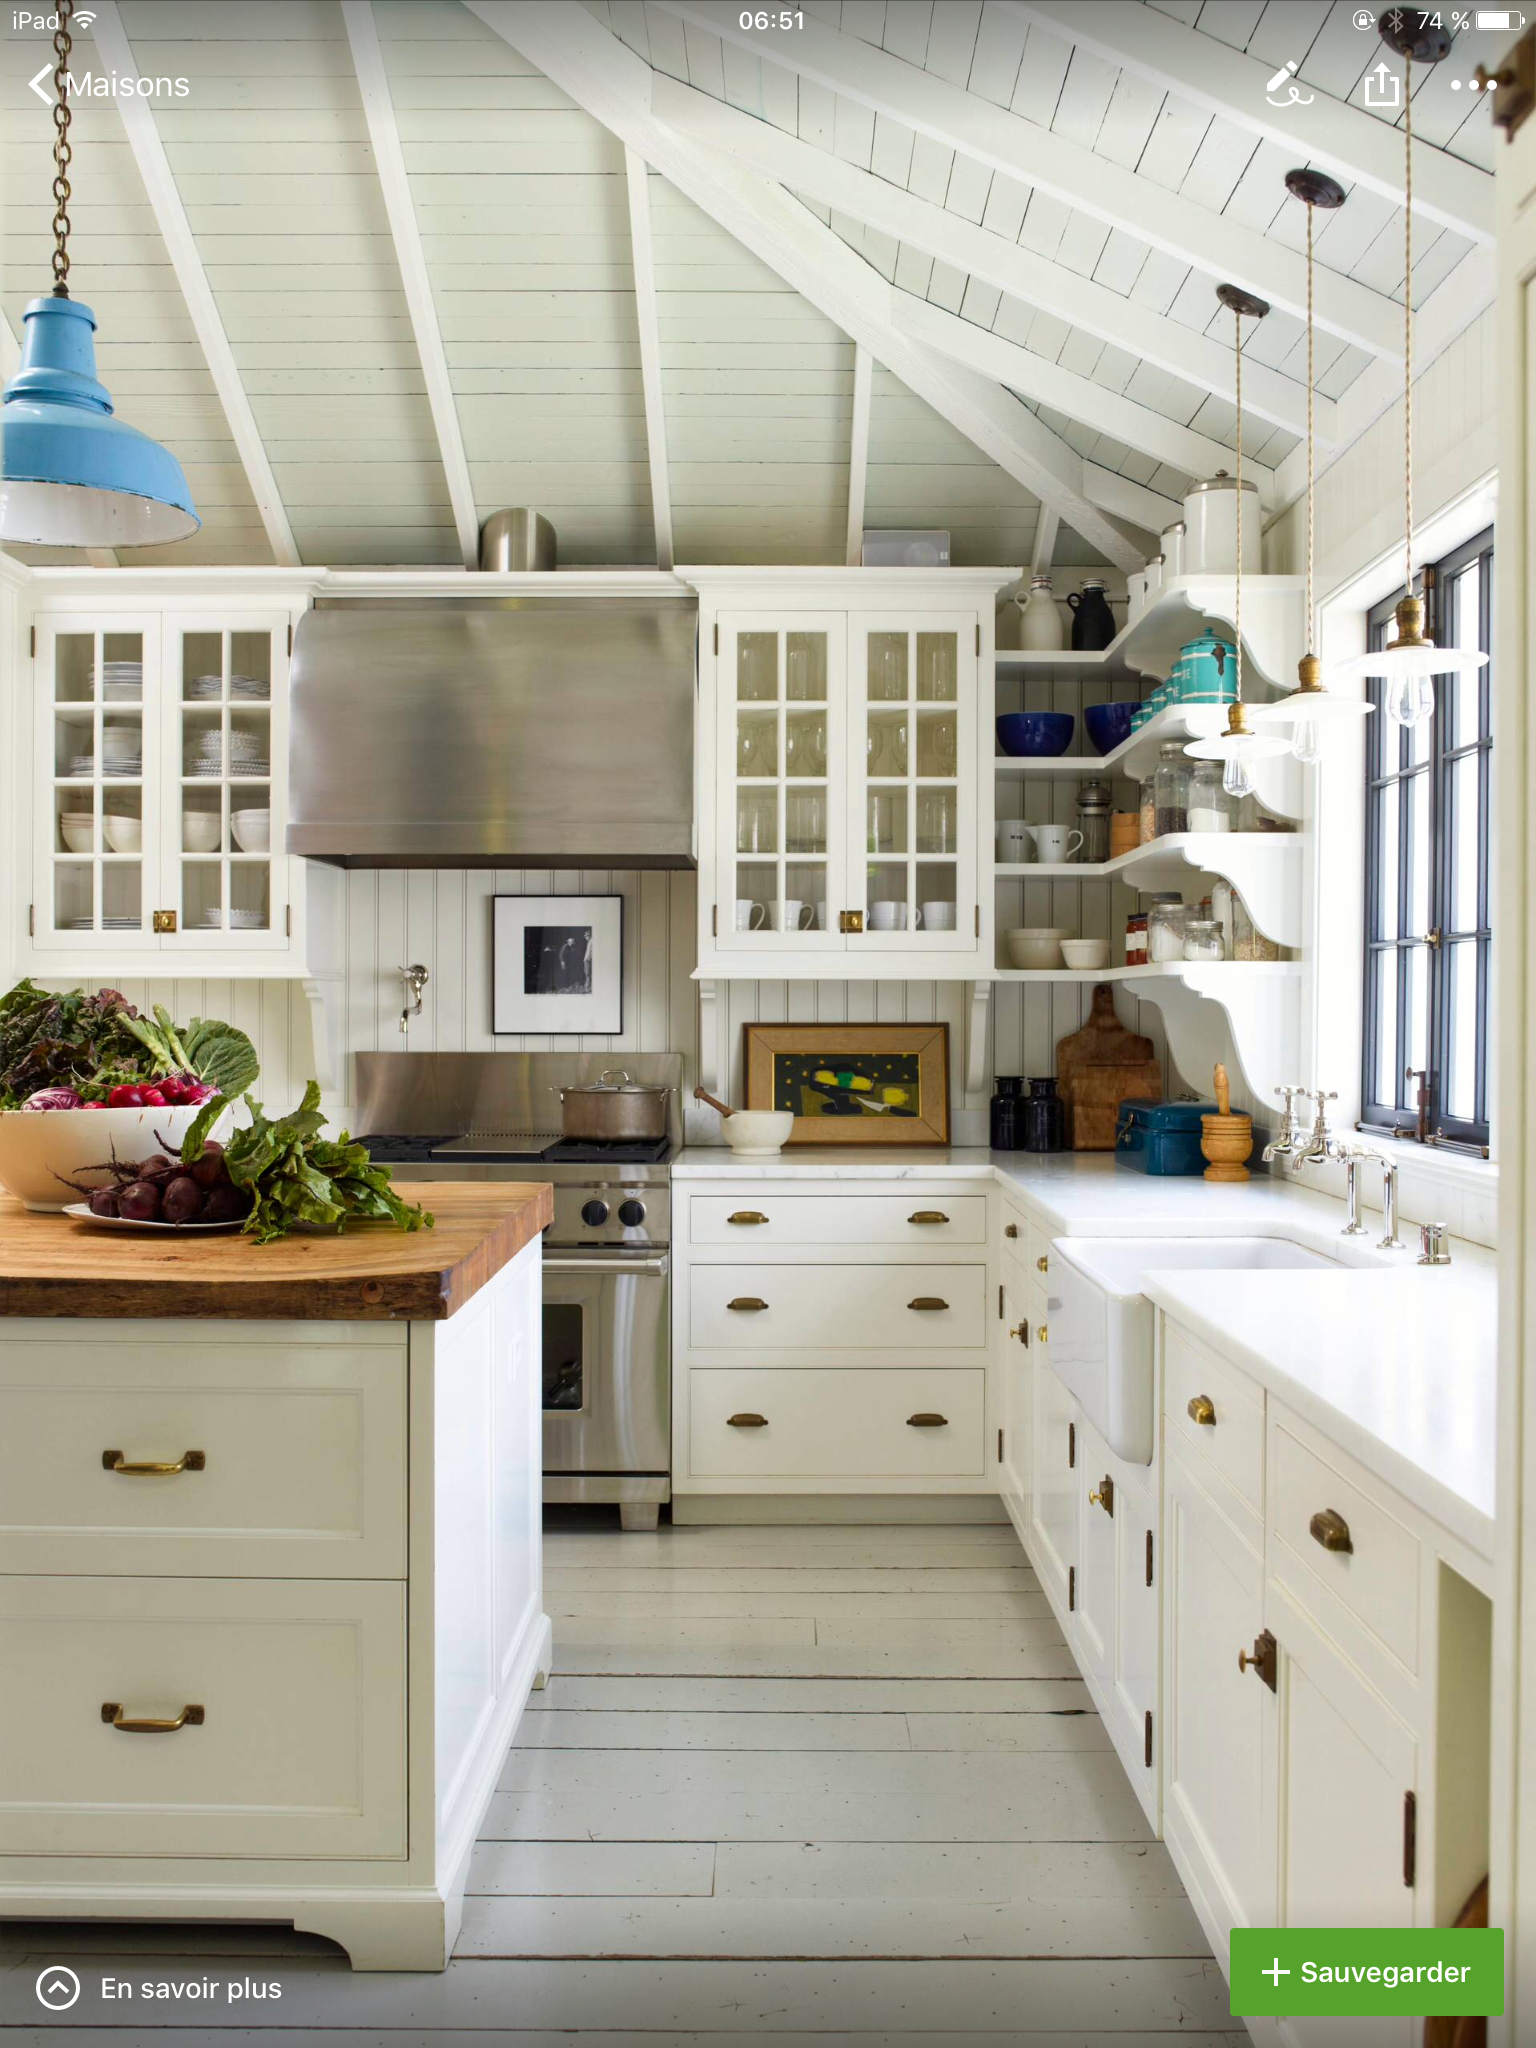 A Properly Designed Small Kitchen Has Minimal Clutter And Maximum